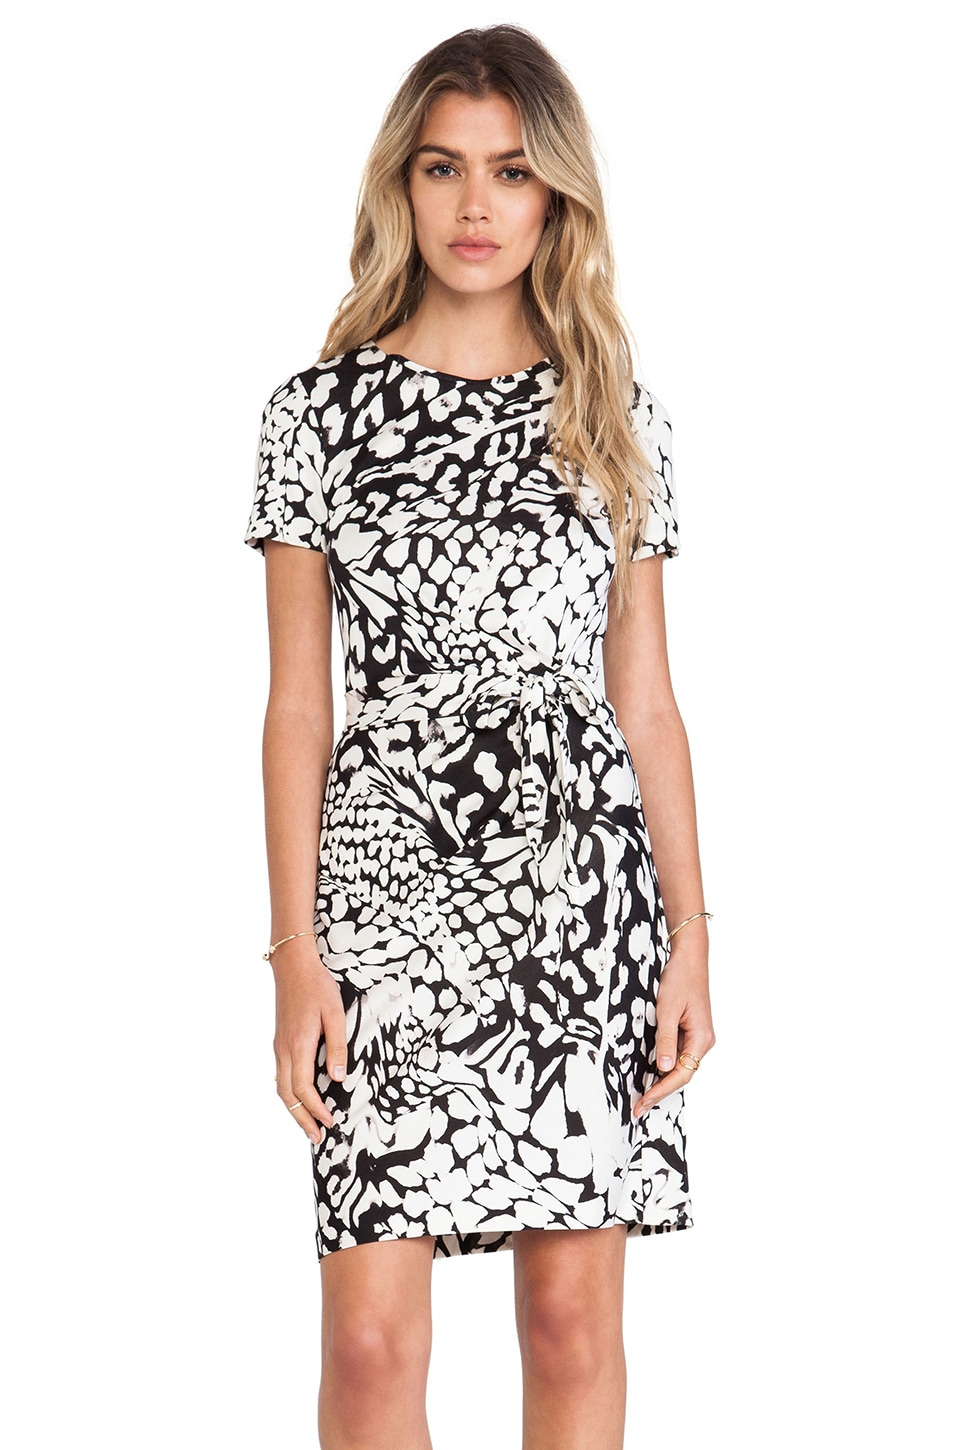 Diane von Furstenberg Zoe Wrap Dress in Feather Leopard Black